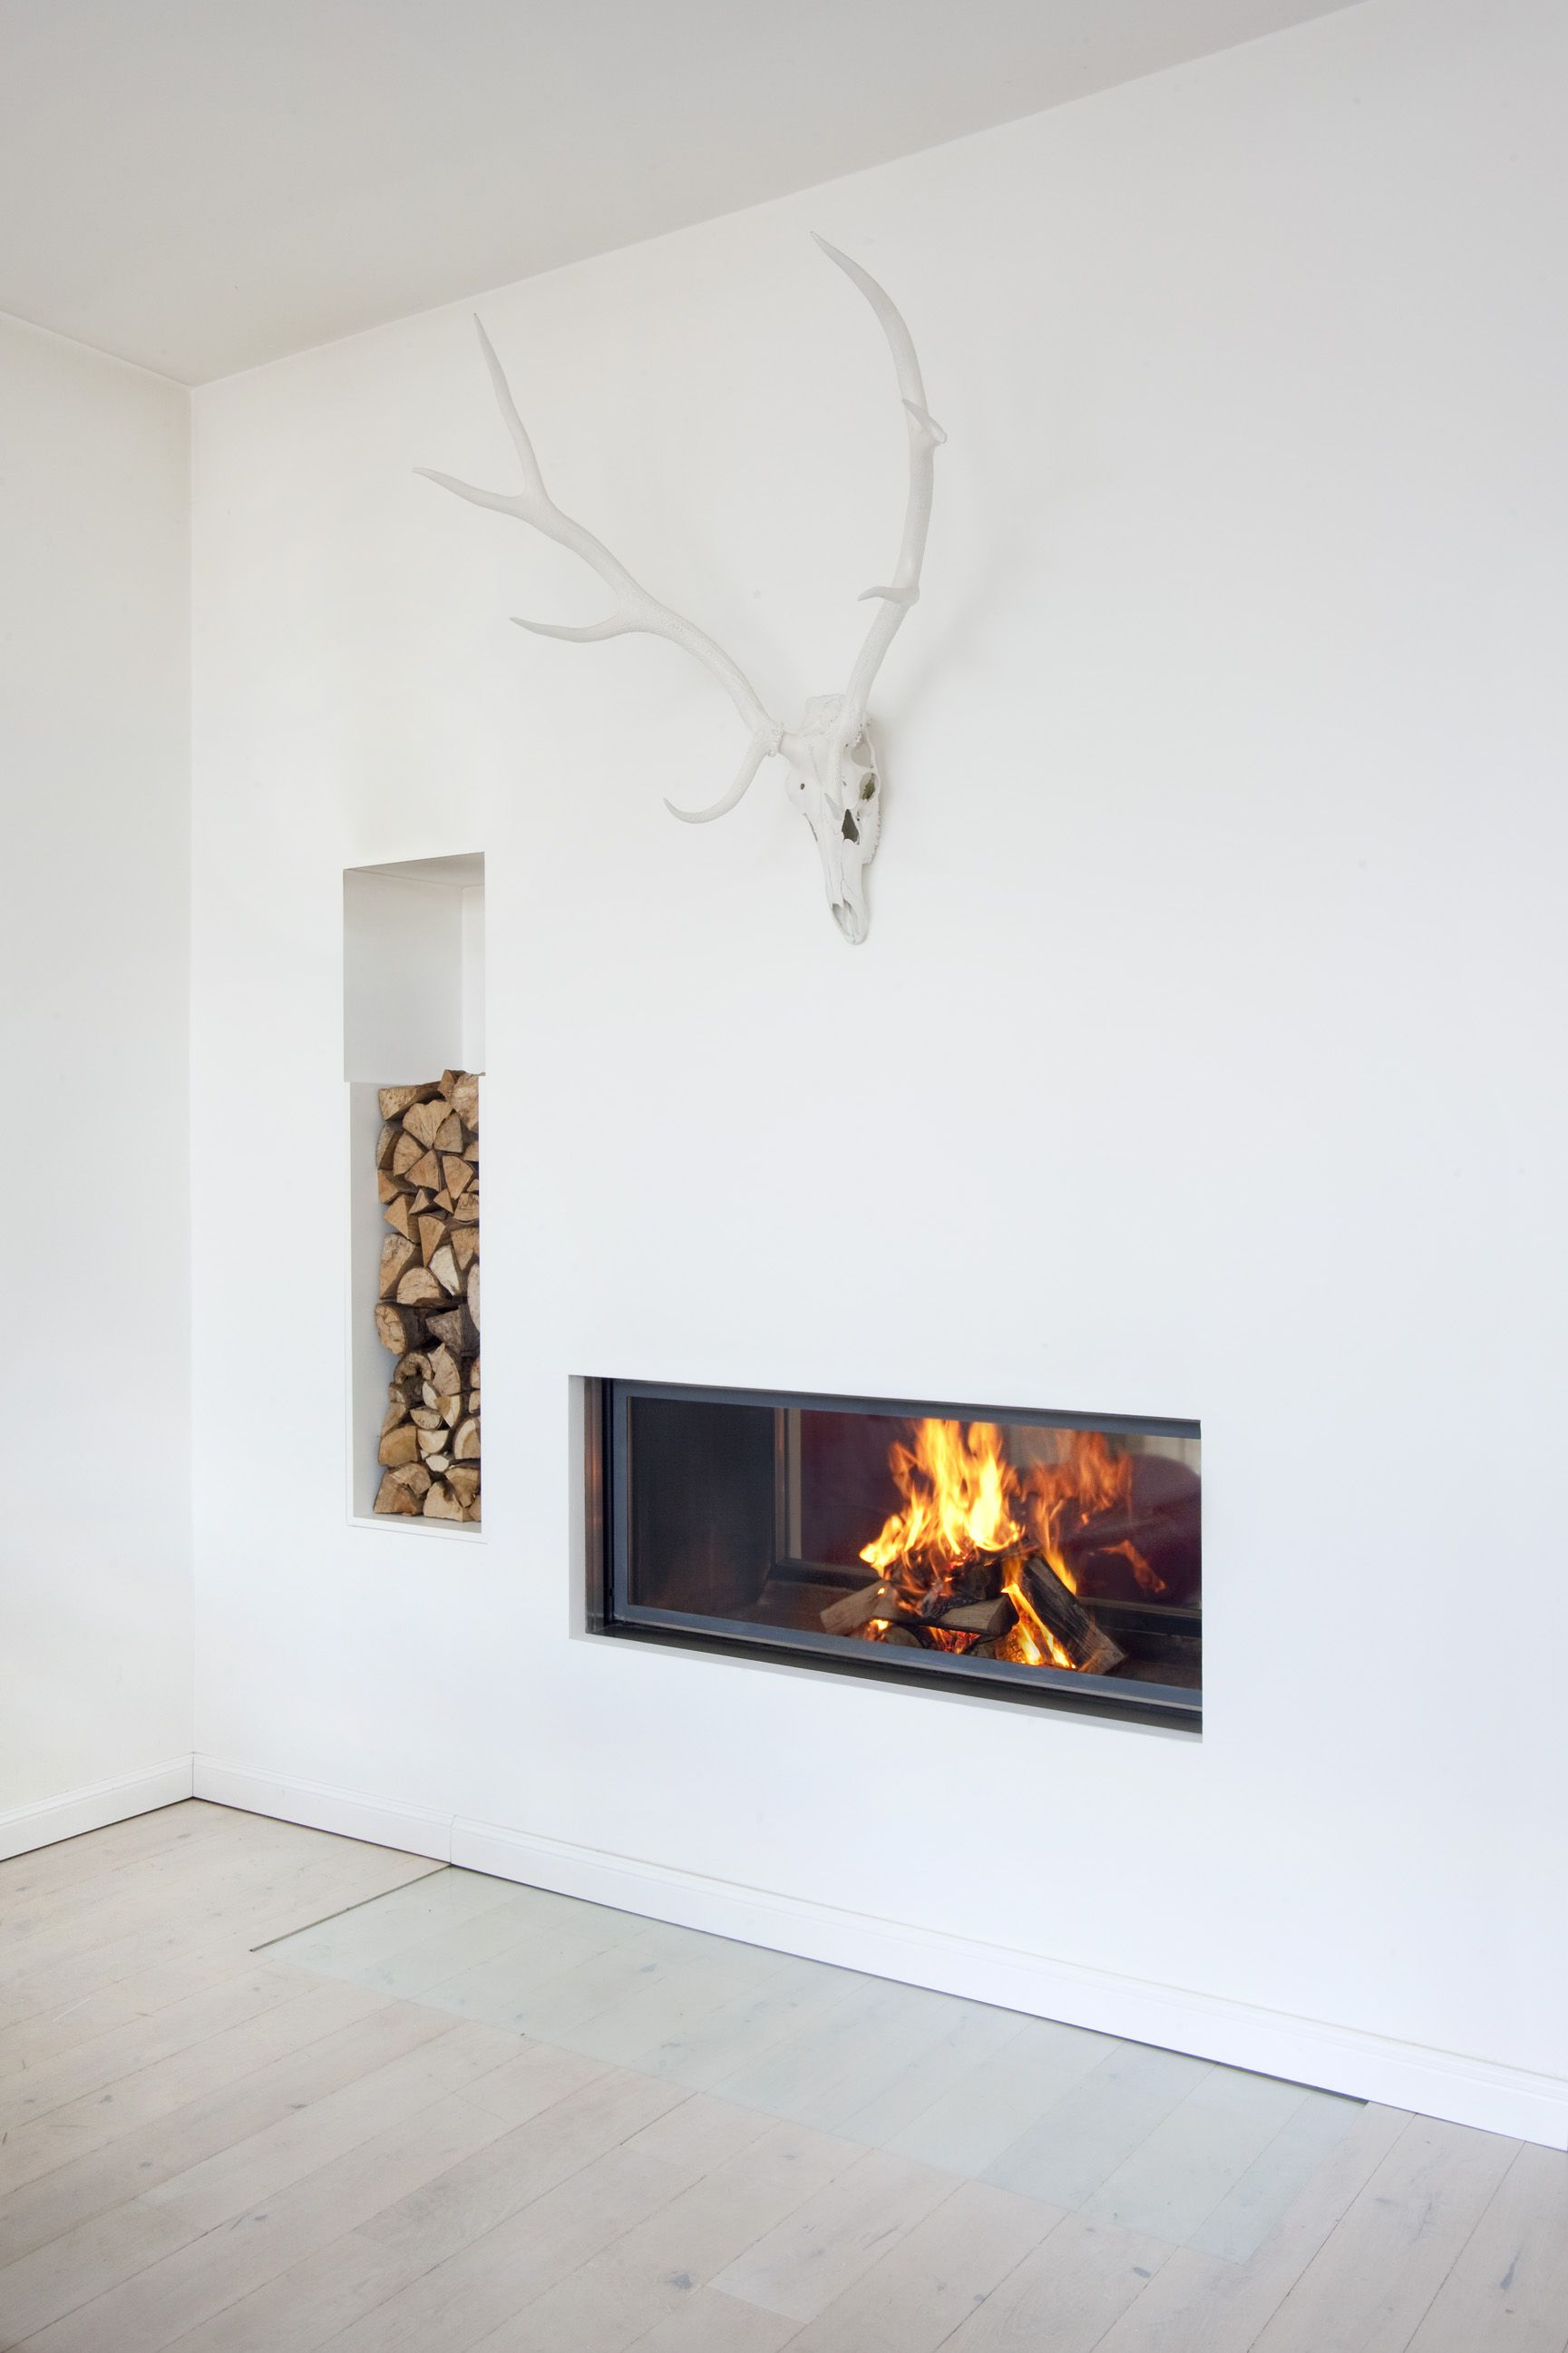 1c0bd4ea775122e19f2ec7e289d4d26a Top Result 50 Awesome Modern Outdoor Fireplace Picture 2018 Gst3